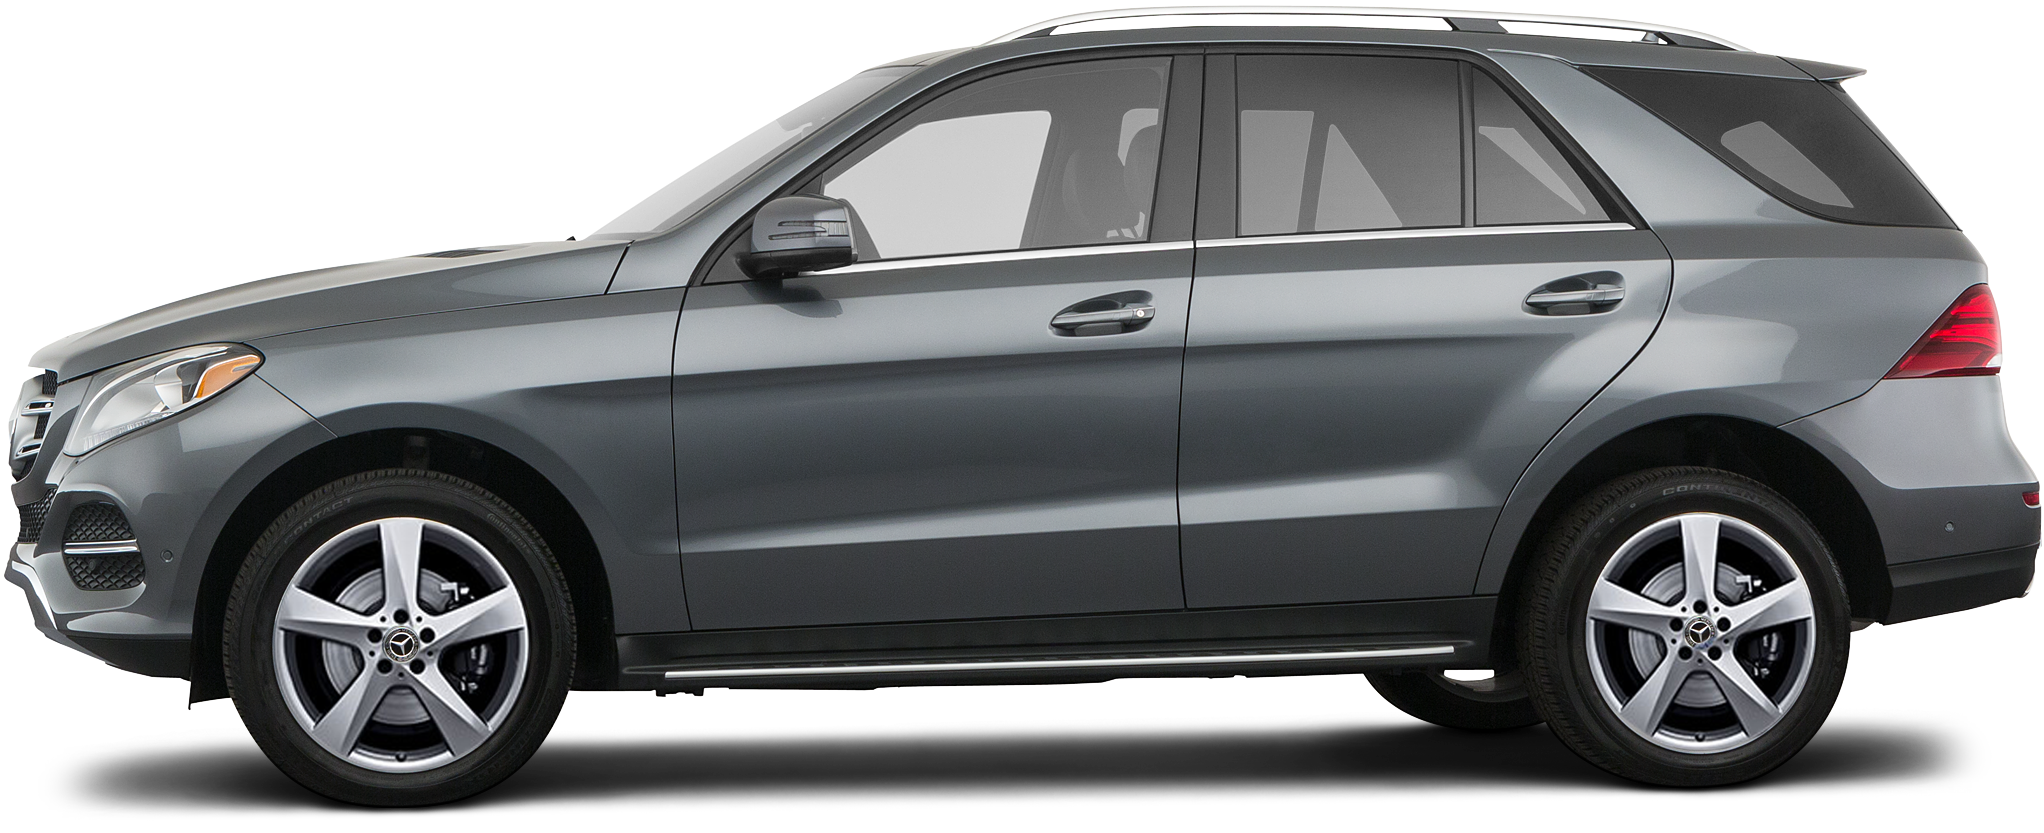 2019 Mercedes-Benz GLE 400 SUV 4MATIC